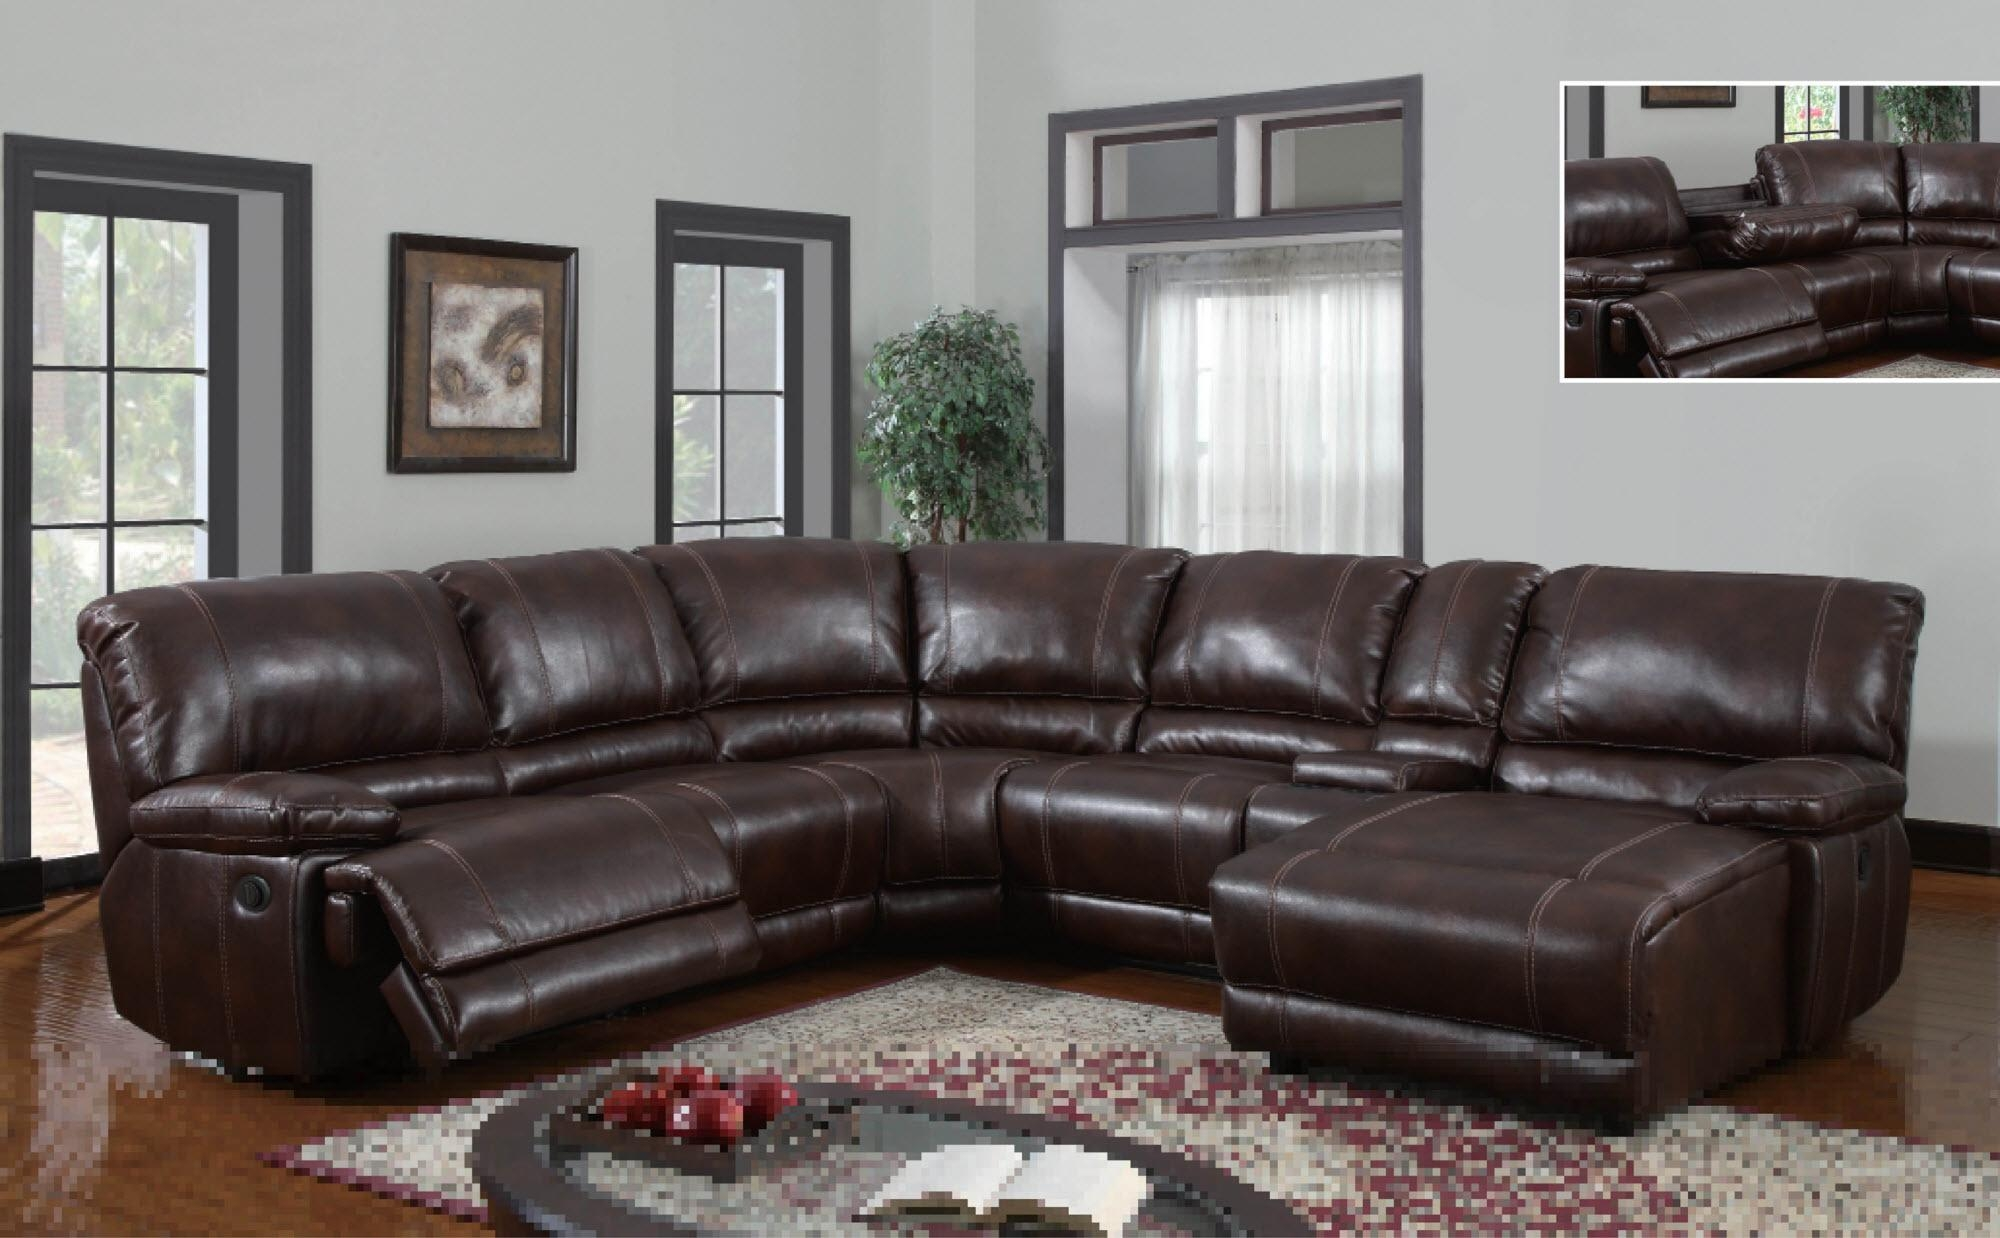 Hotelsbacau – Sectional Sofa Ideas Regarding Curved Sectional Sofa With Recliner (View 13 of 15)